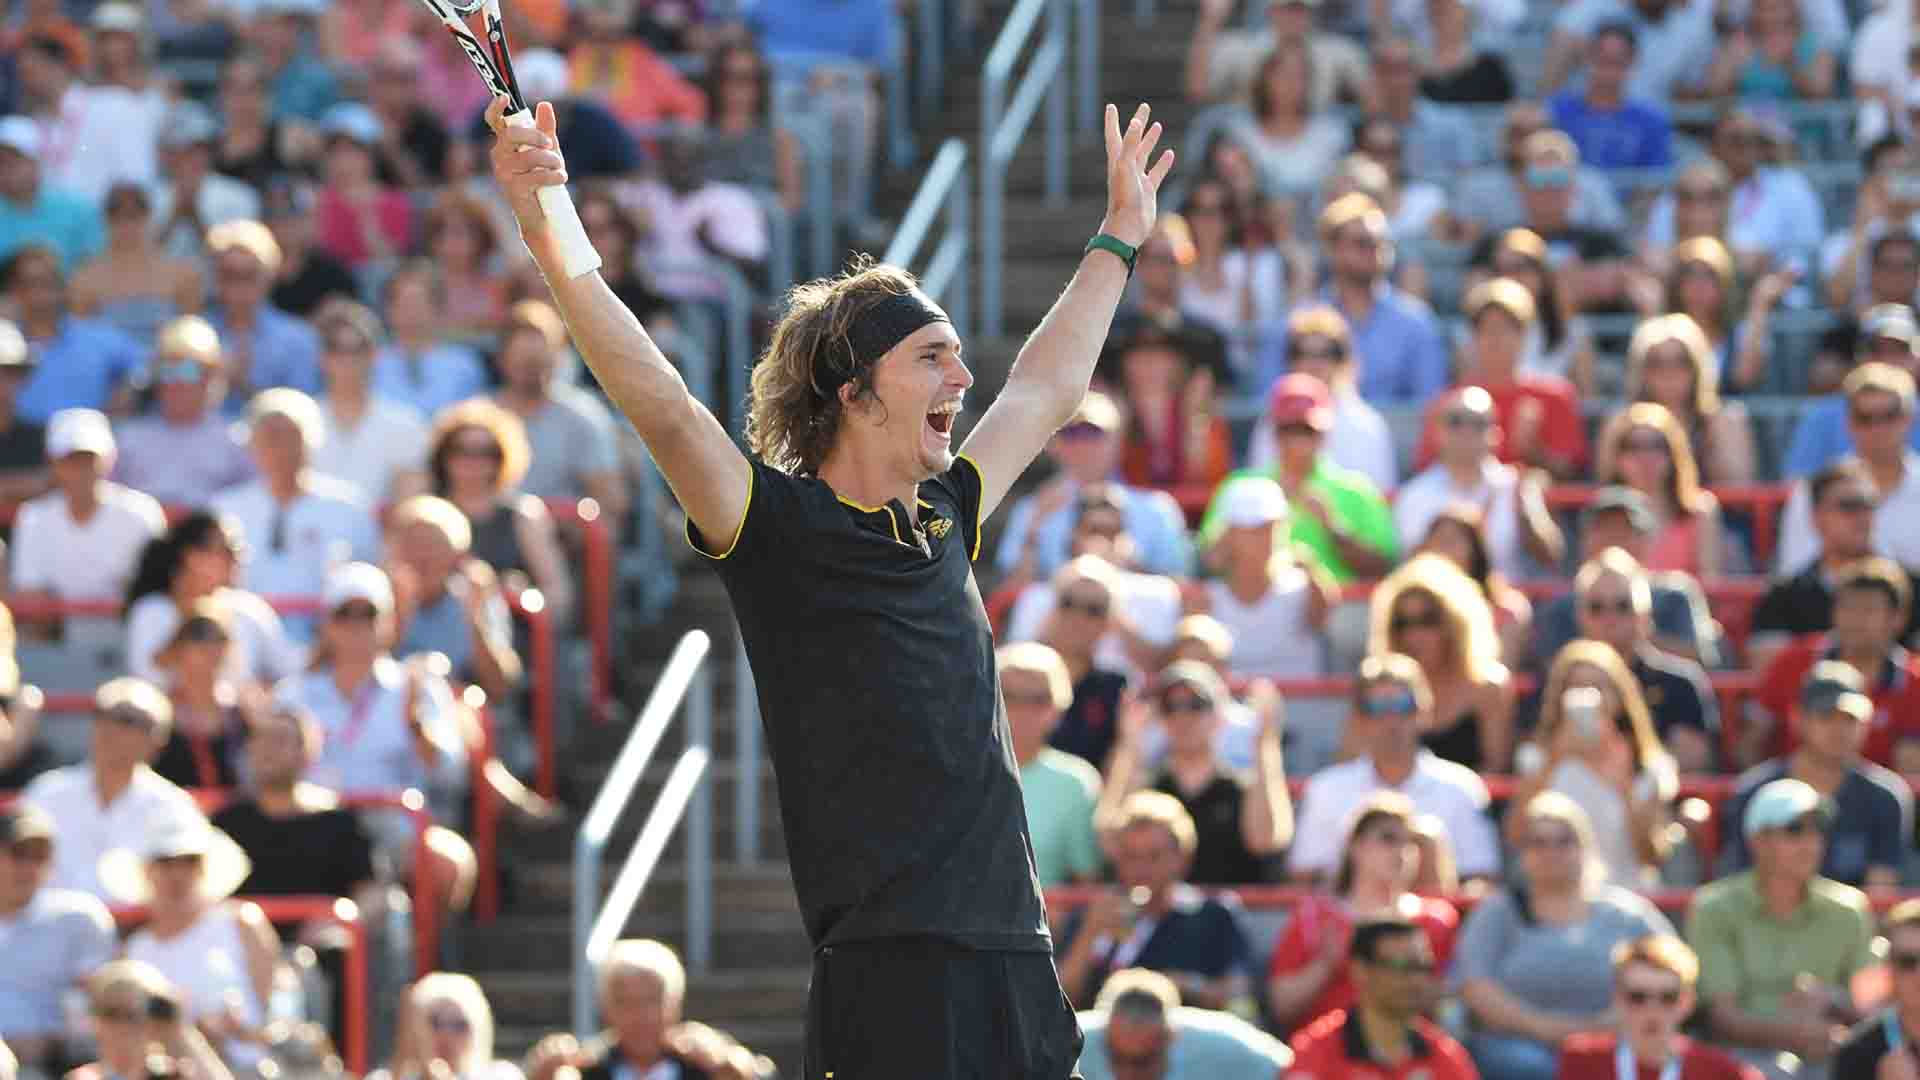 <a href='/en/players/alexander-zverev/z355/overview'>Alexander Zverev</a> beats <a href='/en/players/roger-federer/f324/overview'>Roger Federer</a> in straight sets to win his maiden Coupe Rogers title.